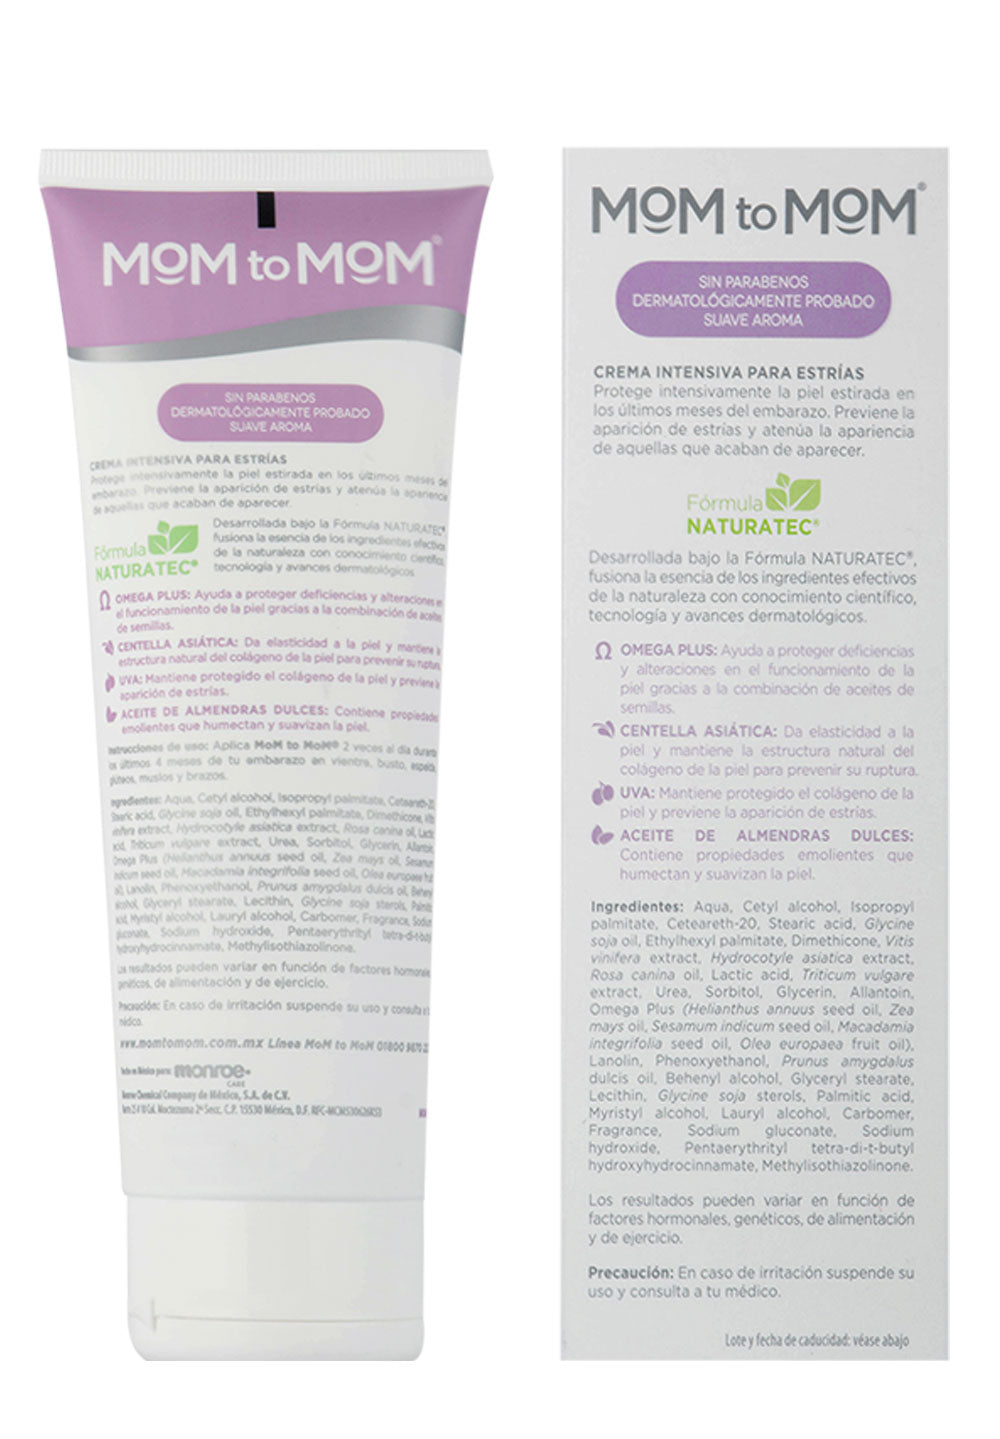 Crema Intensiva para Estrías en el Embarazo MOM to MOM ETAPA b 250ml